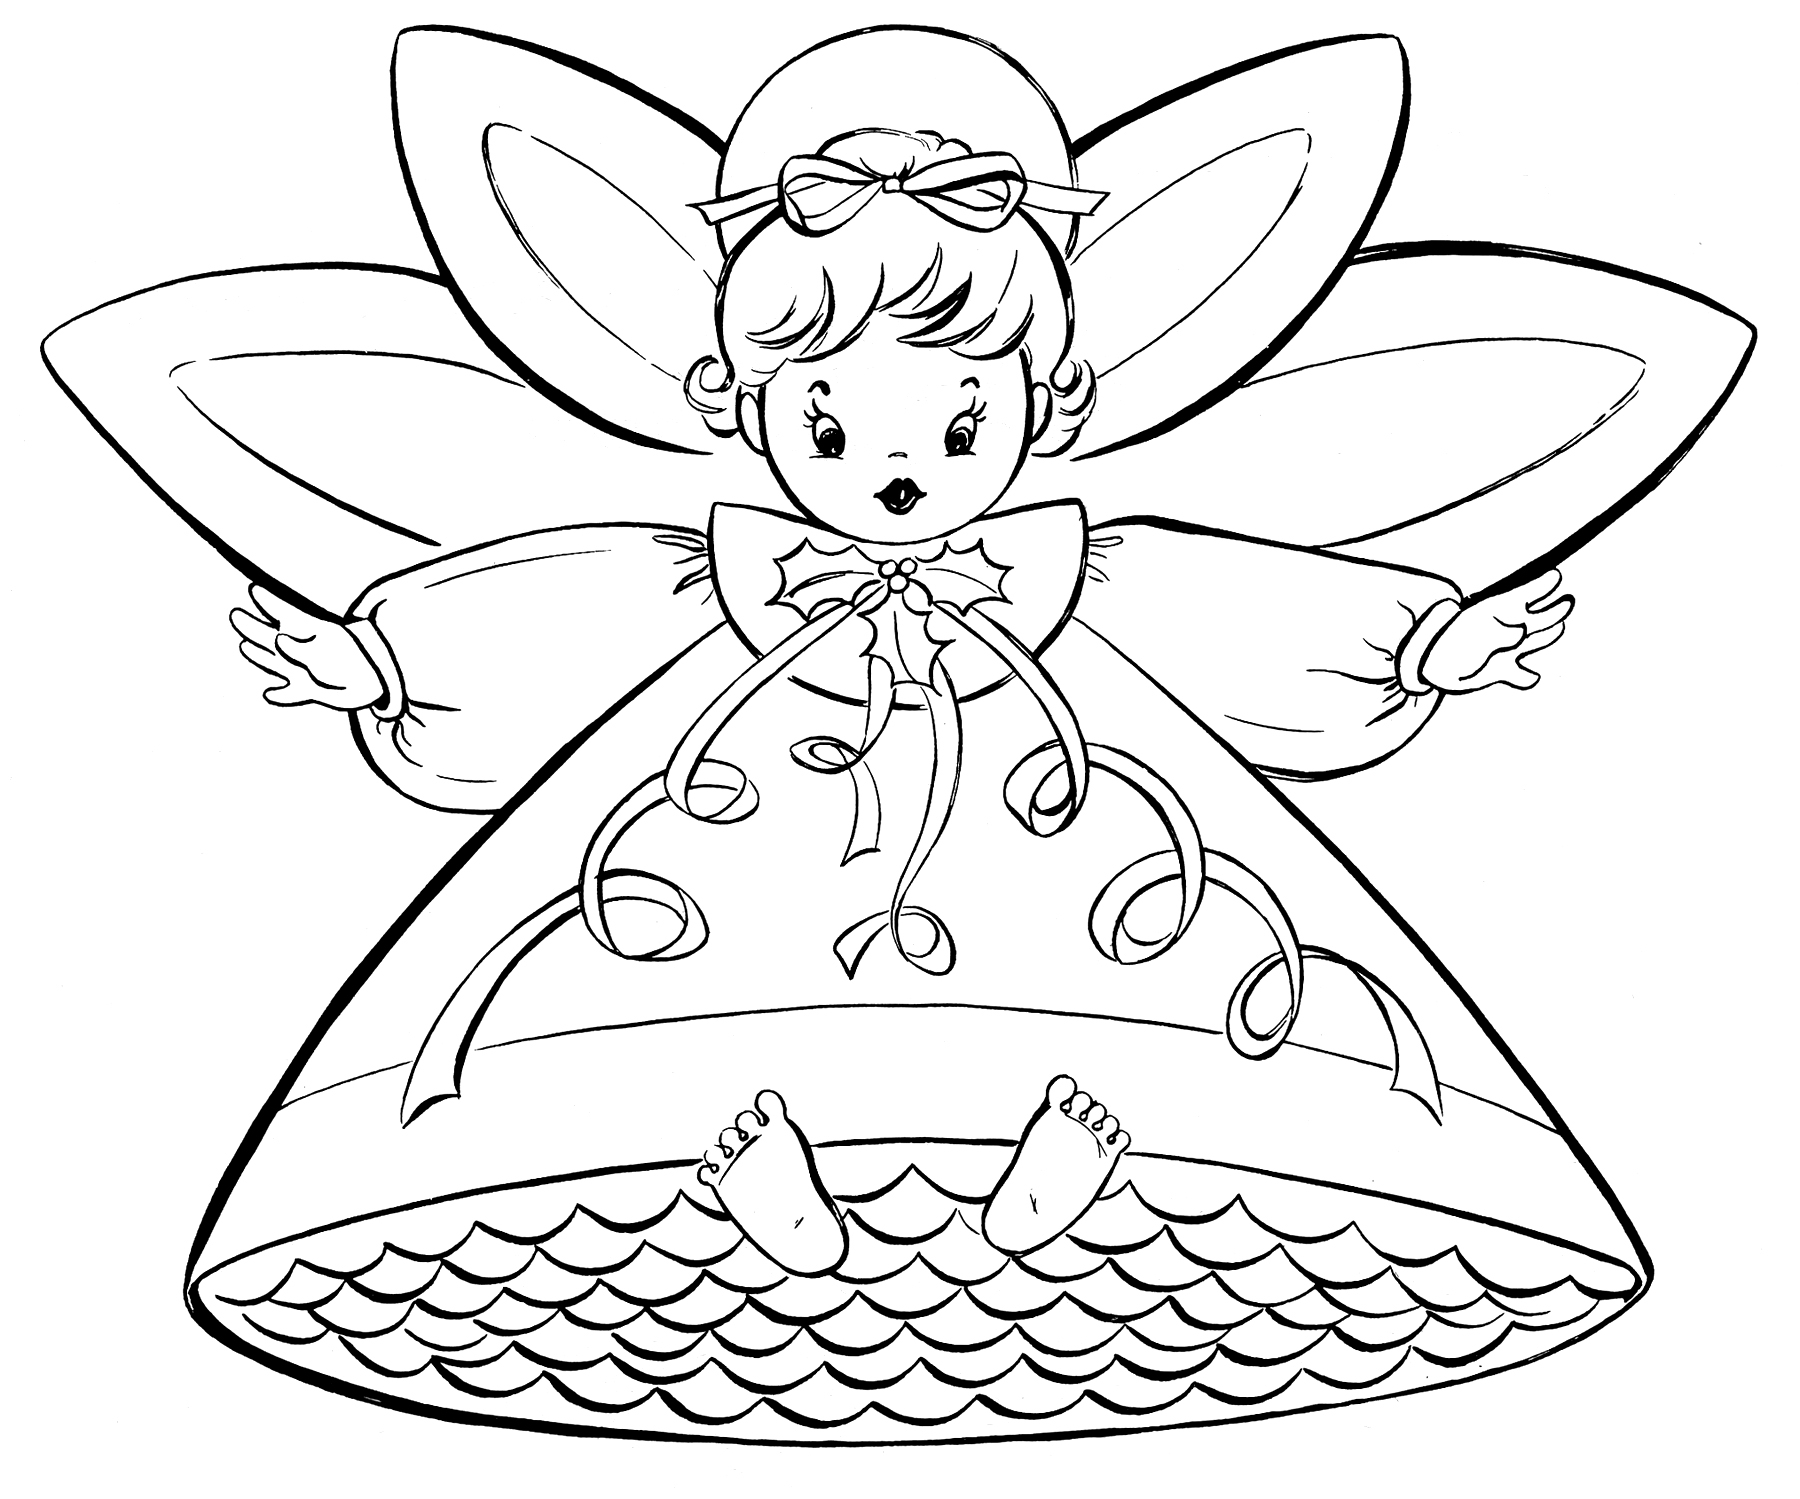 Coloring sheet for christmas - Free Christmas Coloring Pages